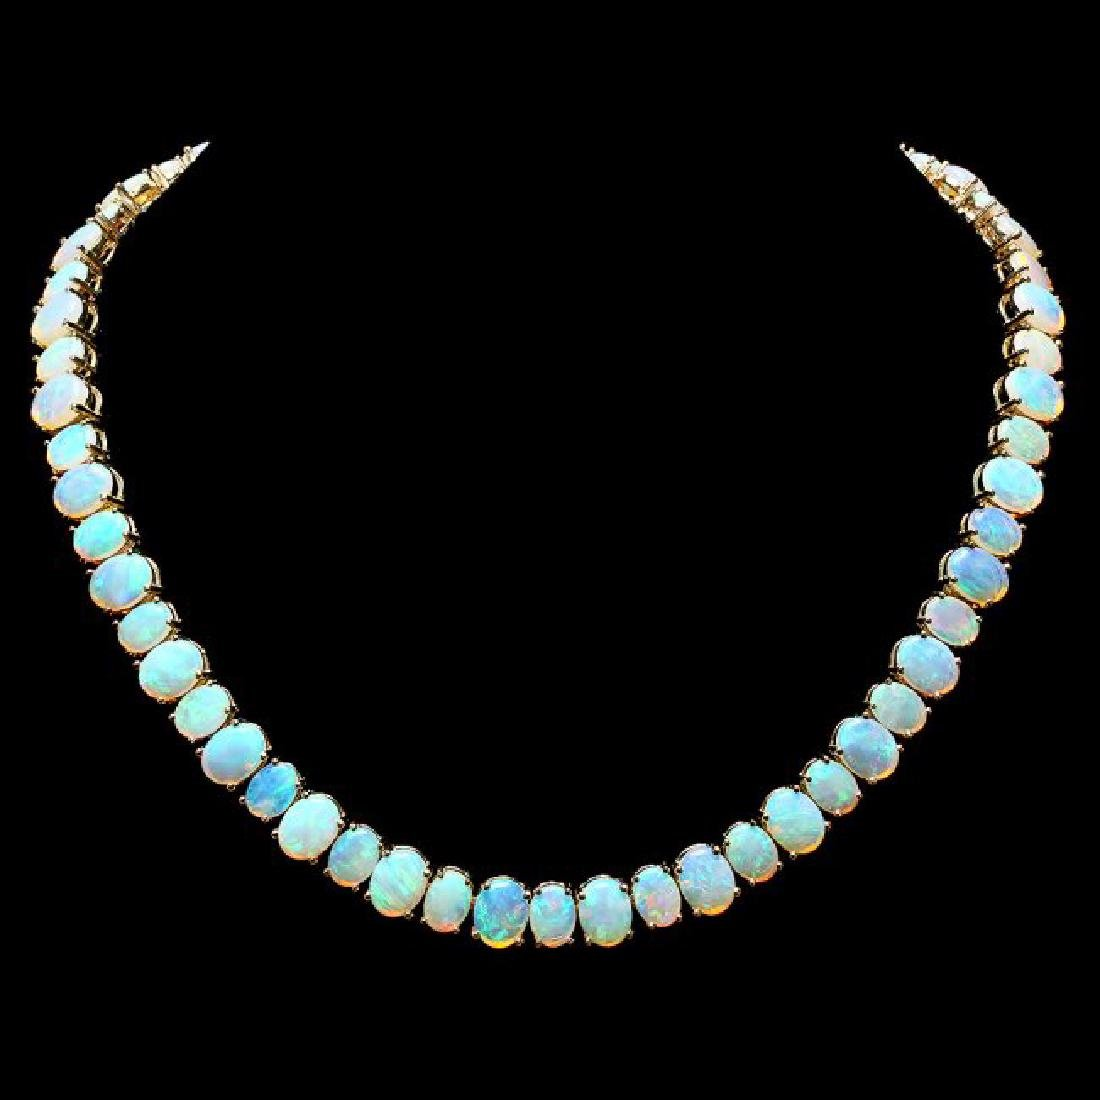 14k Yellow Gold 50.00ct Opal Necklace